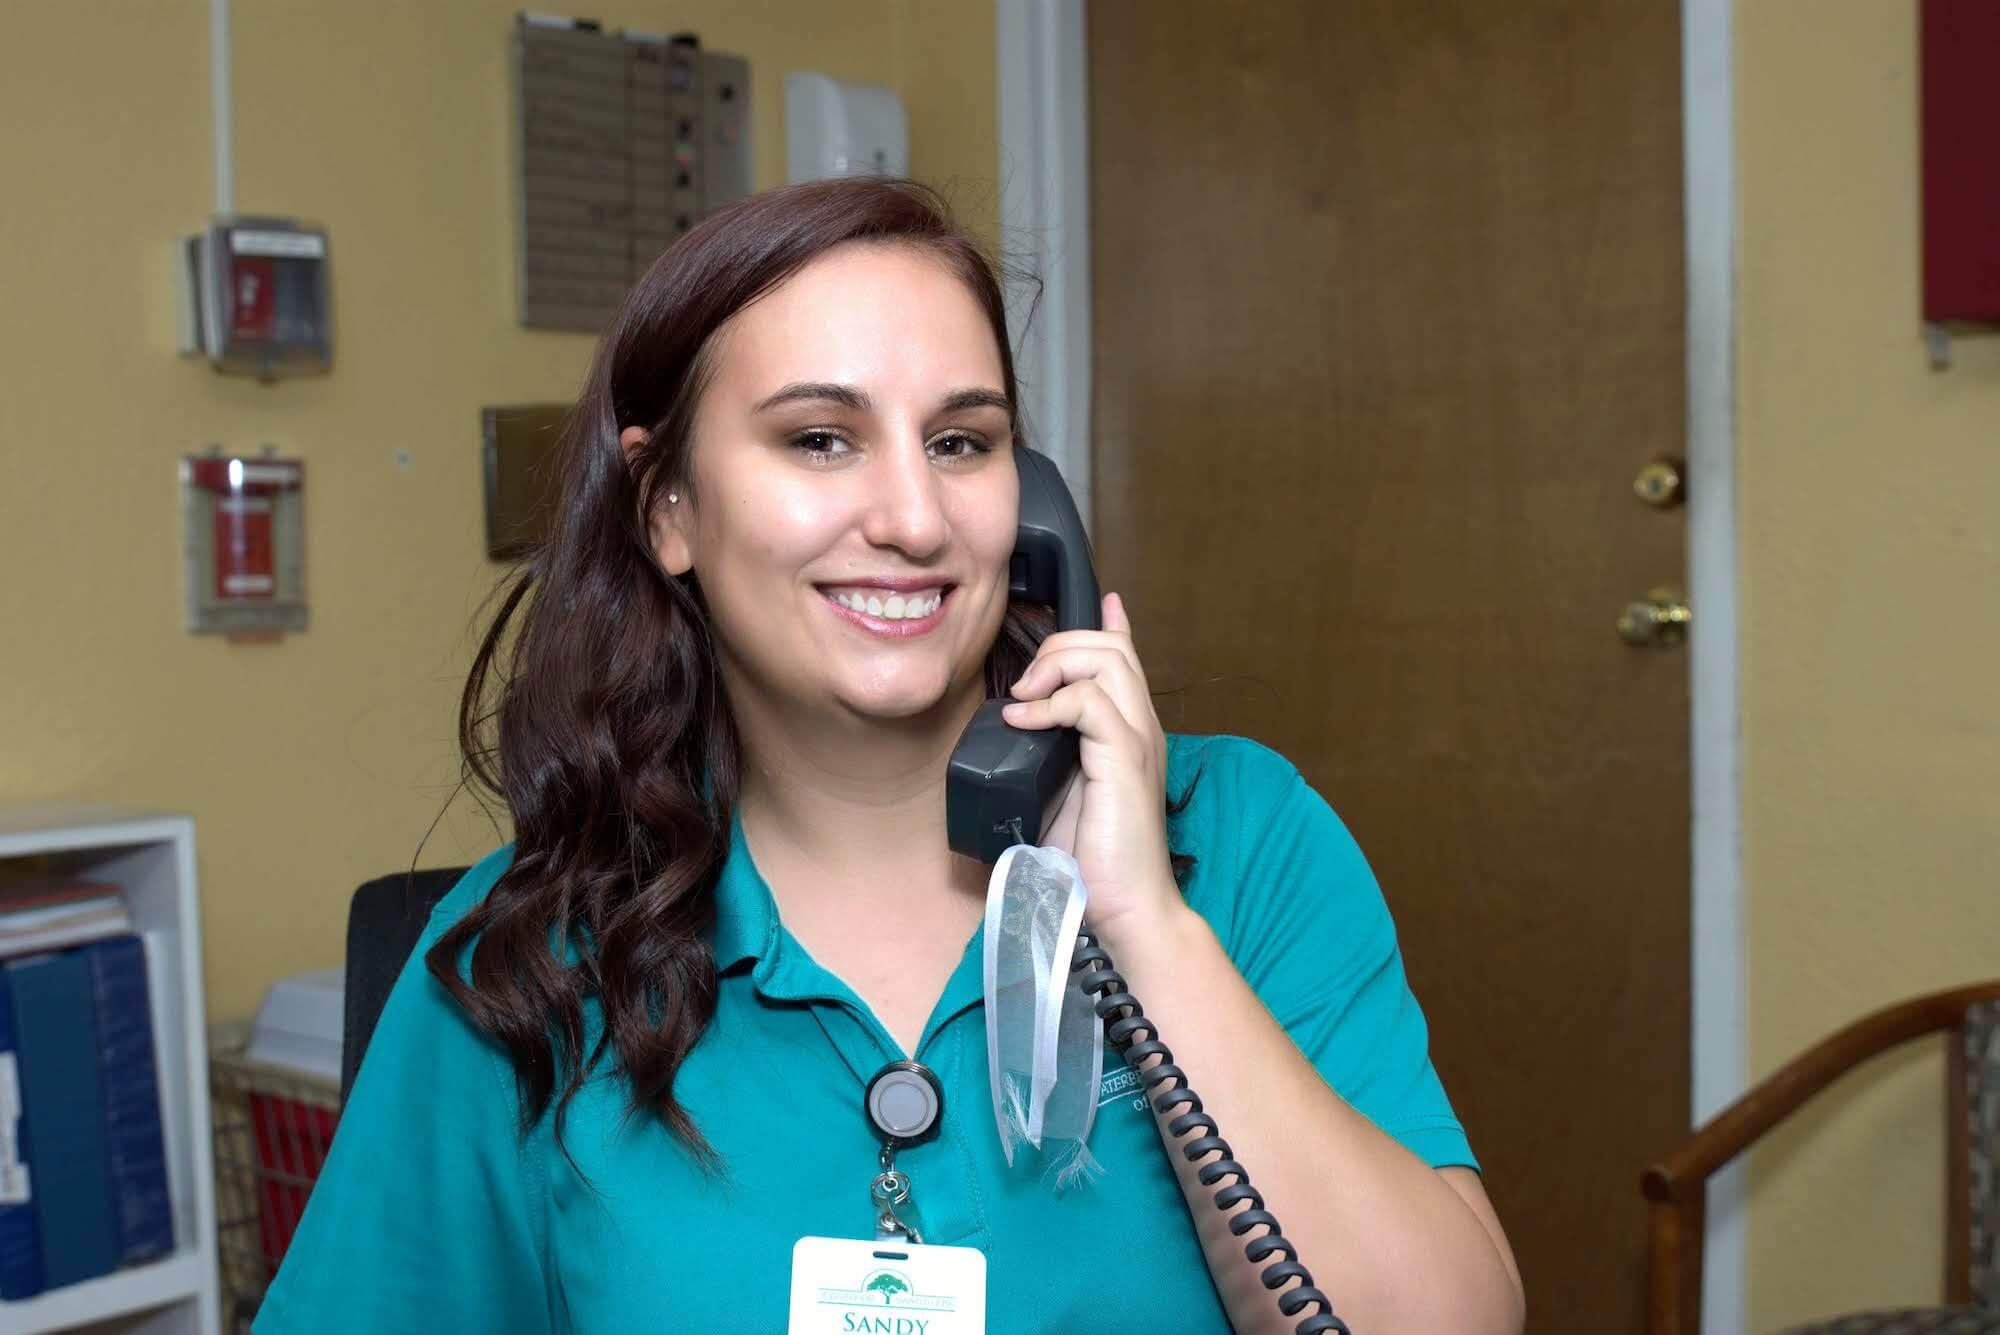 Staff member smiling with phone